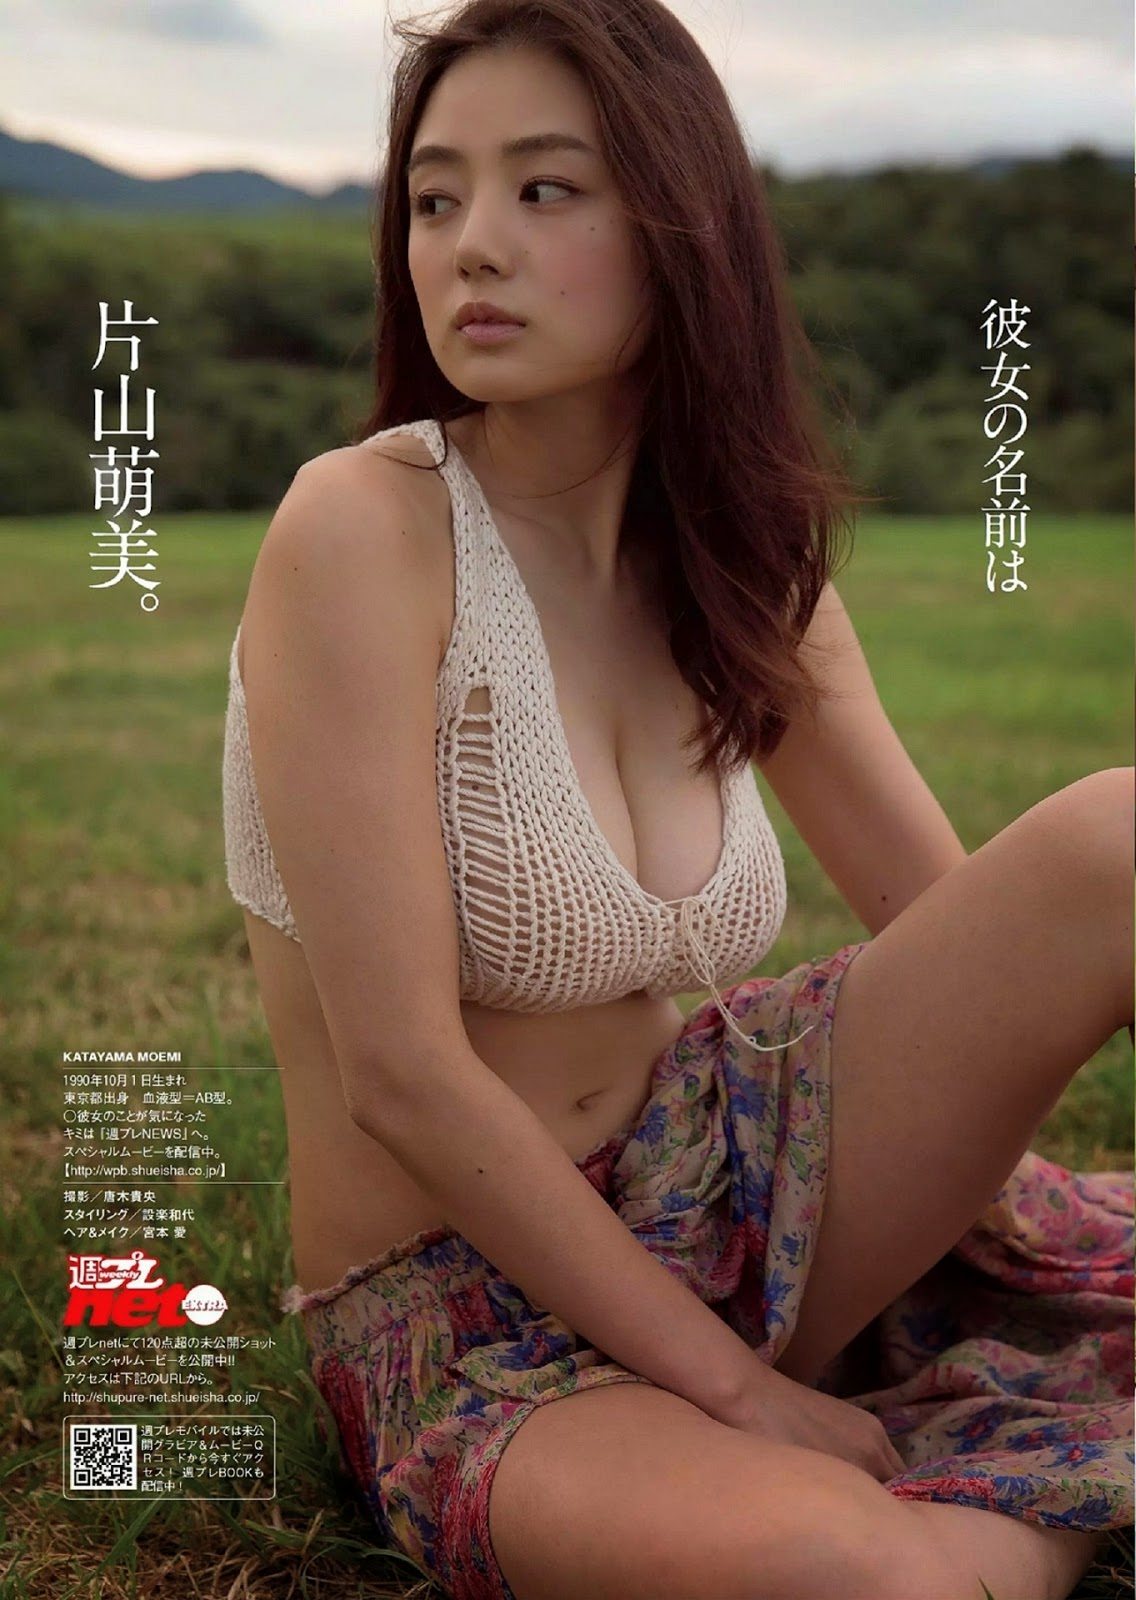 Katayama Moemi 片山萌美 Weekly Playboy Sep 2014 Photos 7